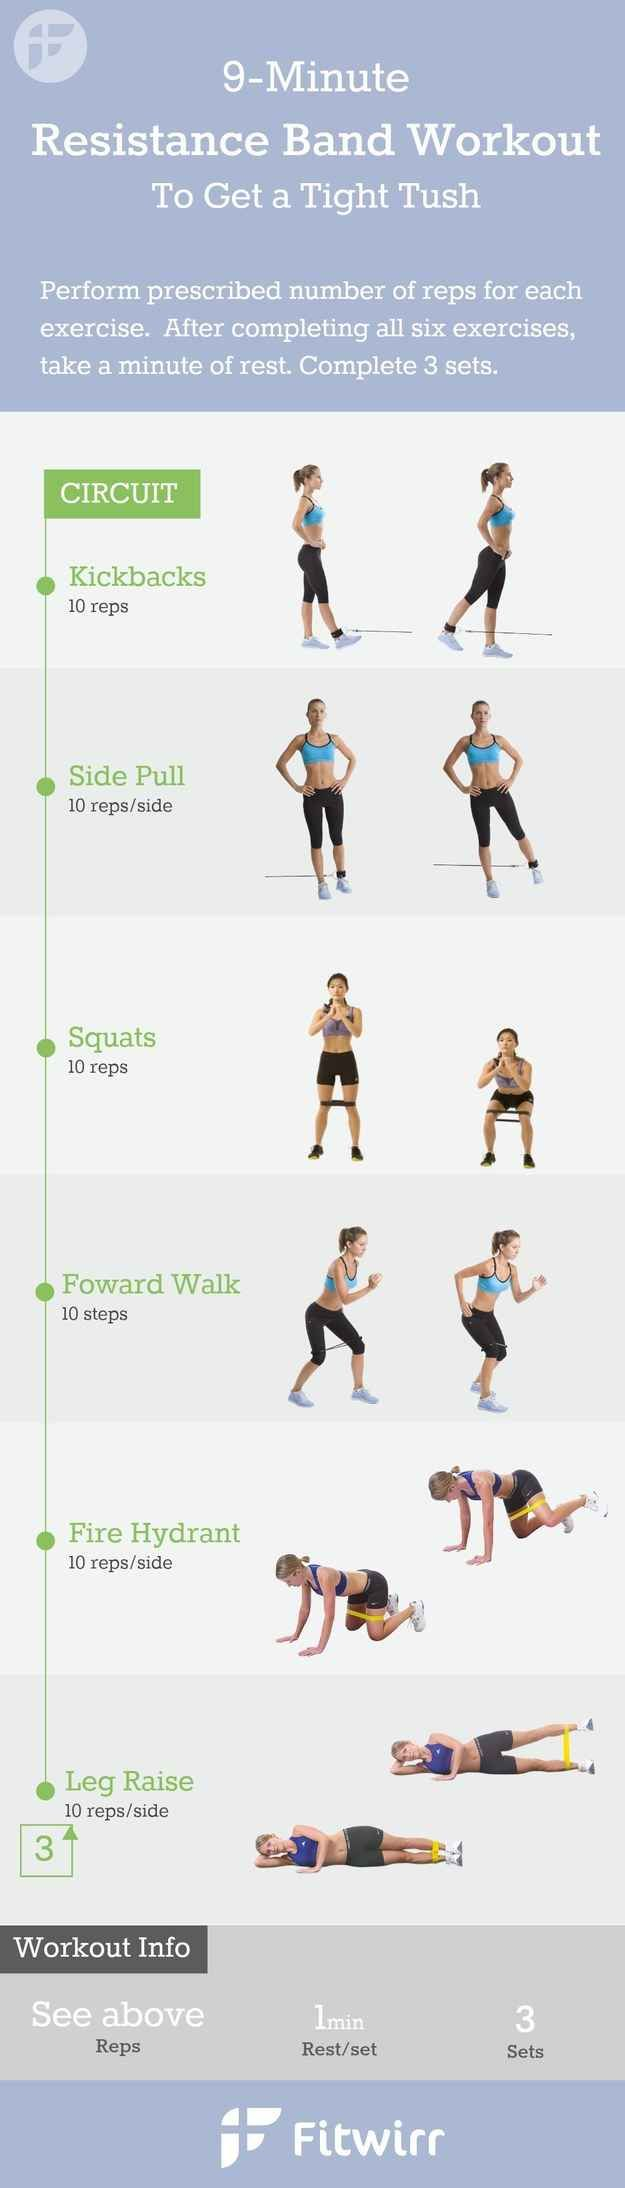 For a butt workout with equipment you can pack in your carry-on: